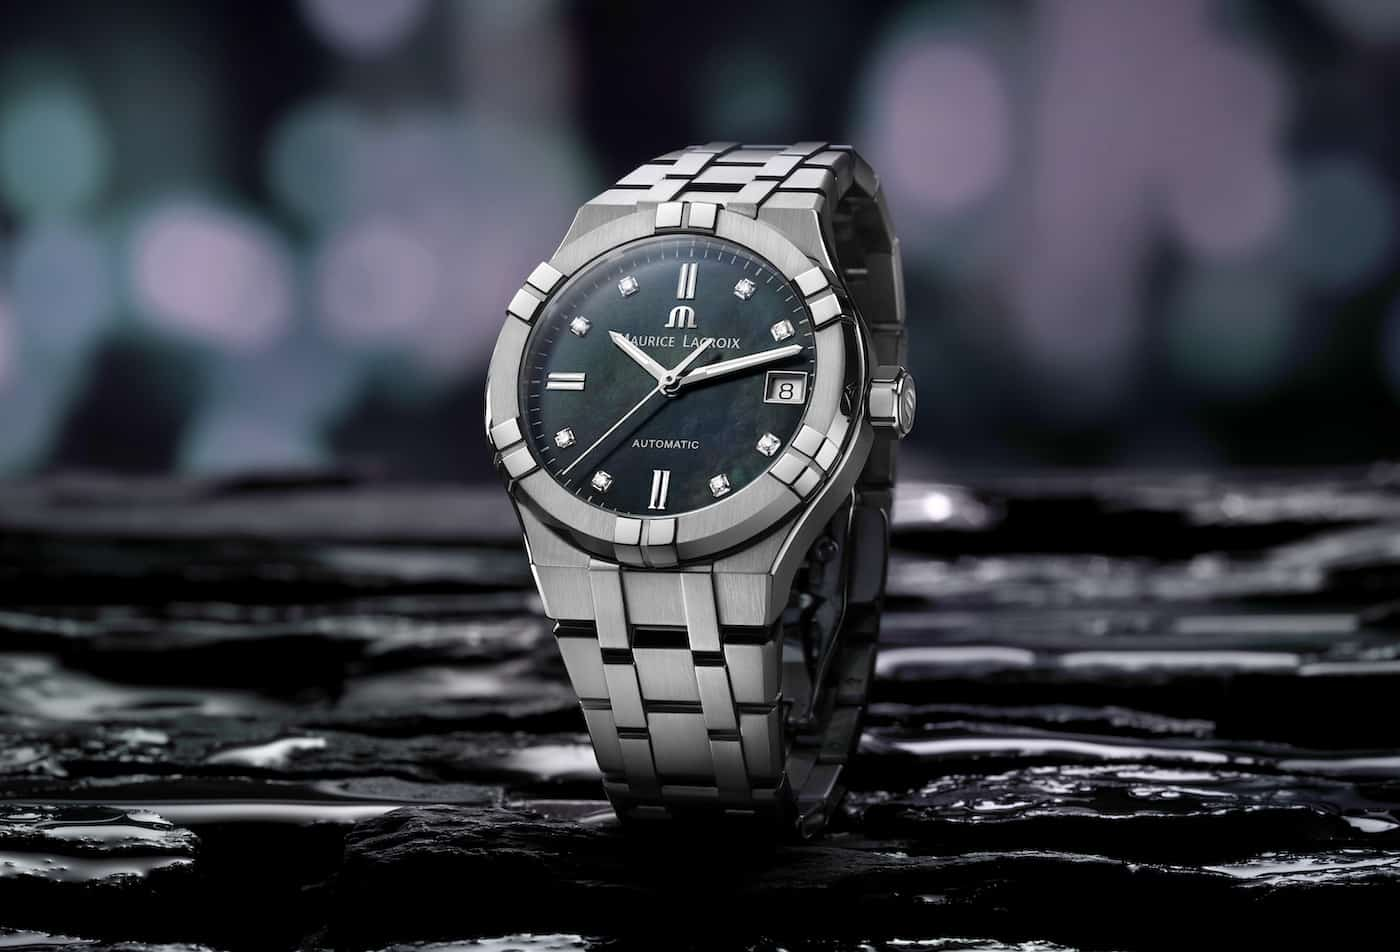 Maurice Lacroix : Get to Know it's Watches